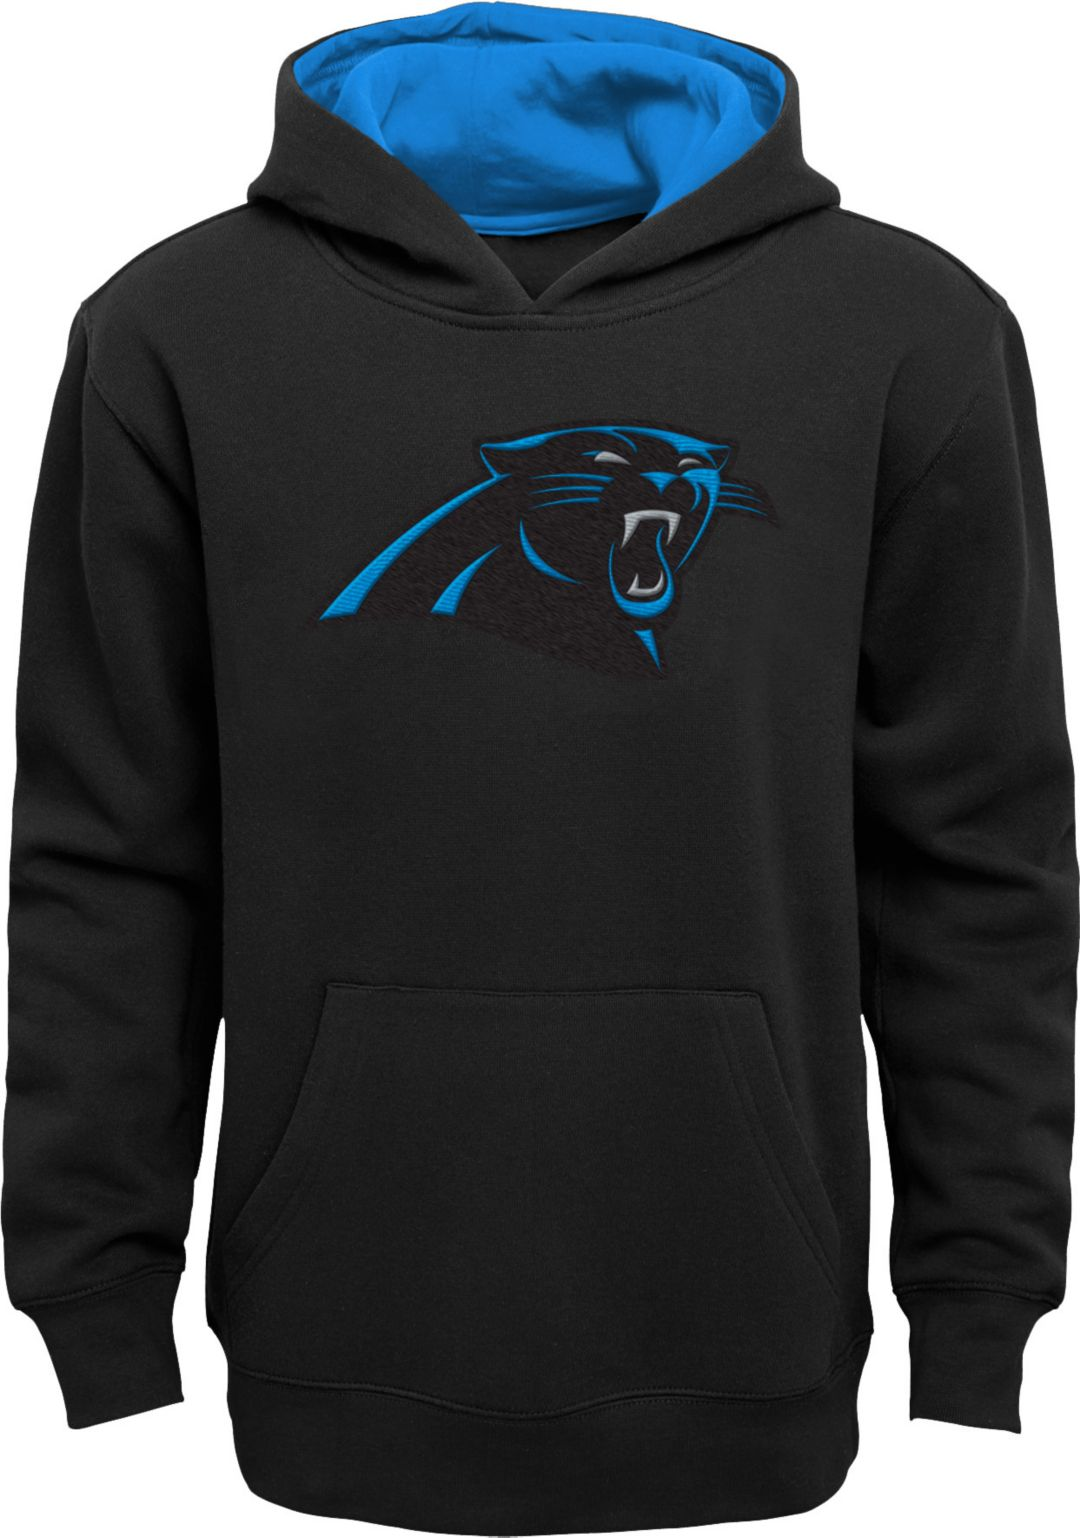 100% authentic cc0e7 b909d NFL Team Apparel Youth Carolina Panthers Prime Black Pullover Hoodie